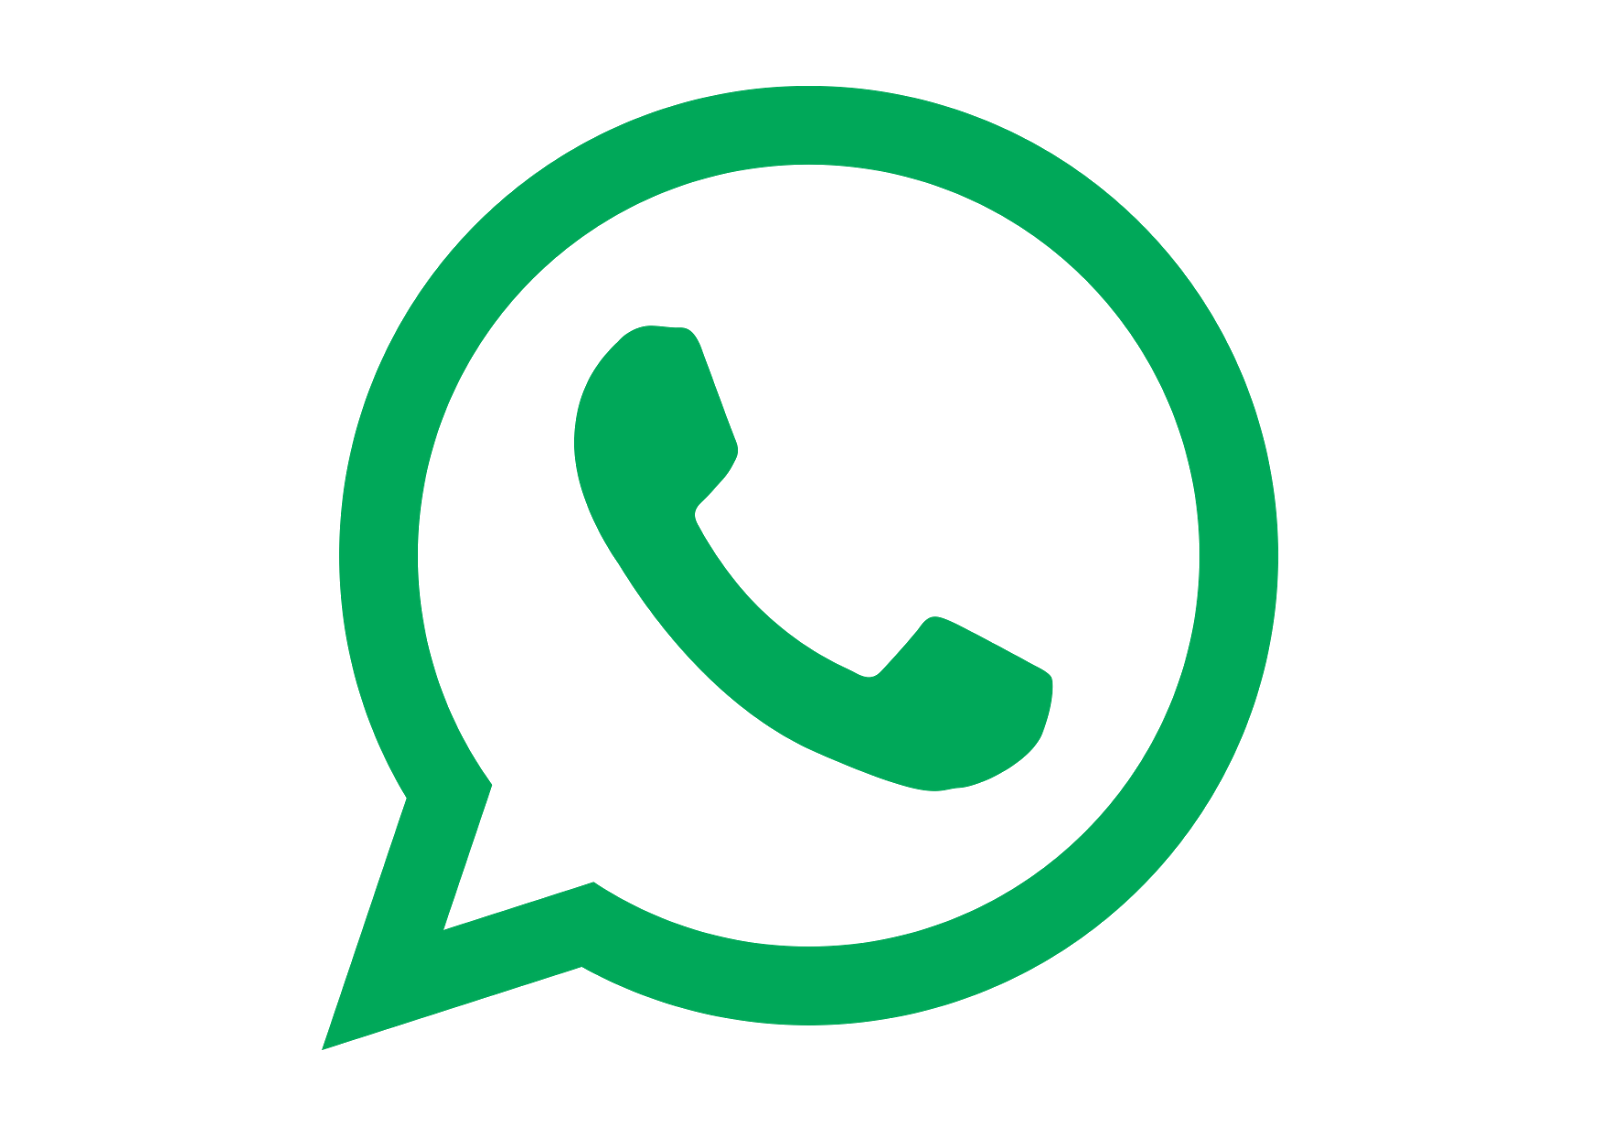 Whatsapp logo png transparent background. Pictures free icons and